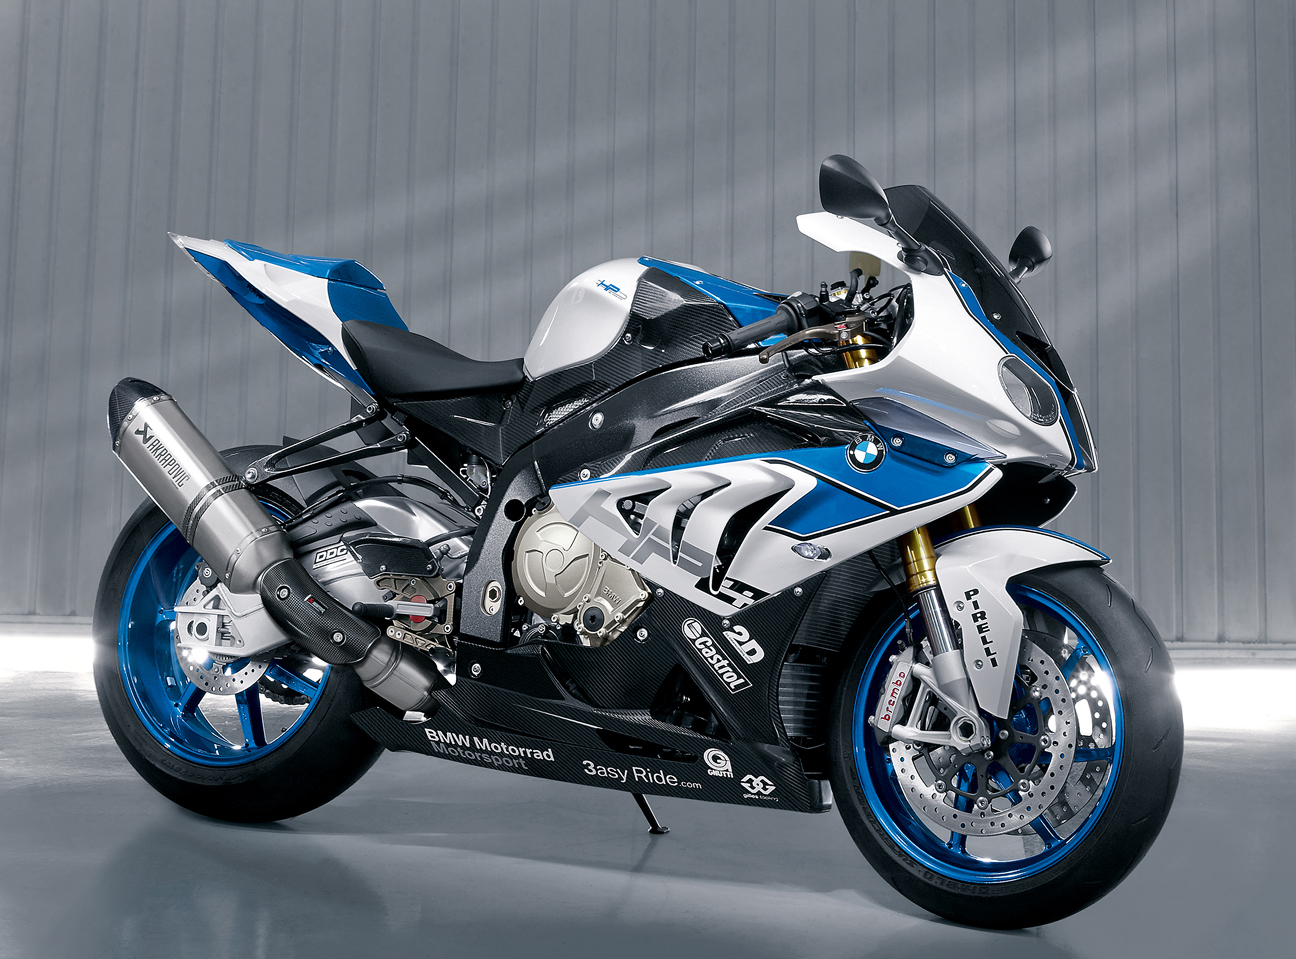 Latest Free Hd Wallpapers Bikes Download Free Glamorous Bmw S1000rr Hd 1968635 Hd Wallpaper Backgrounds Download